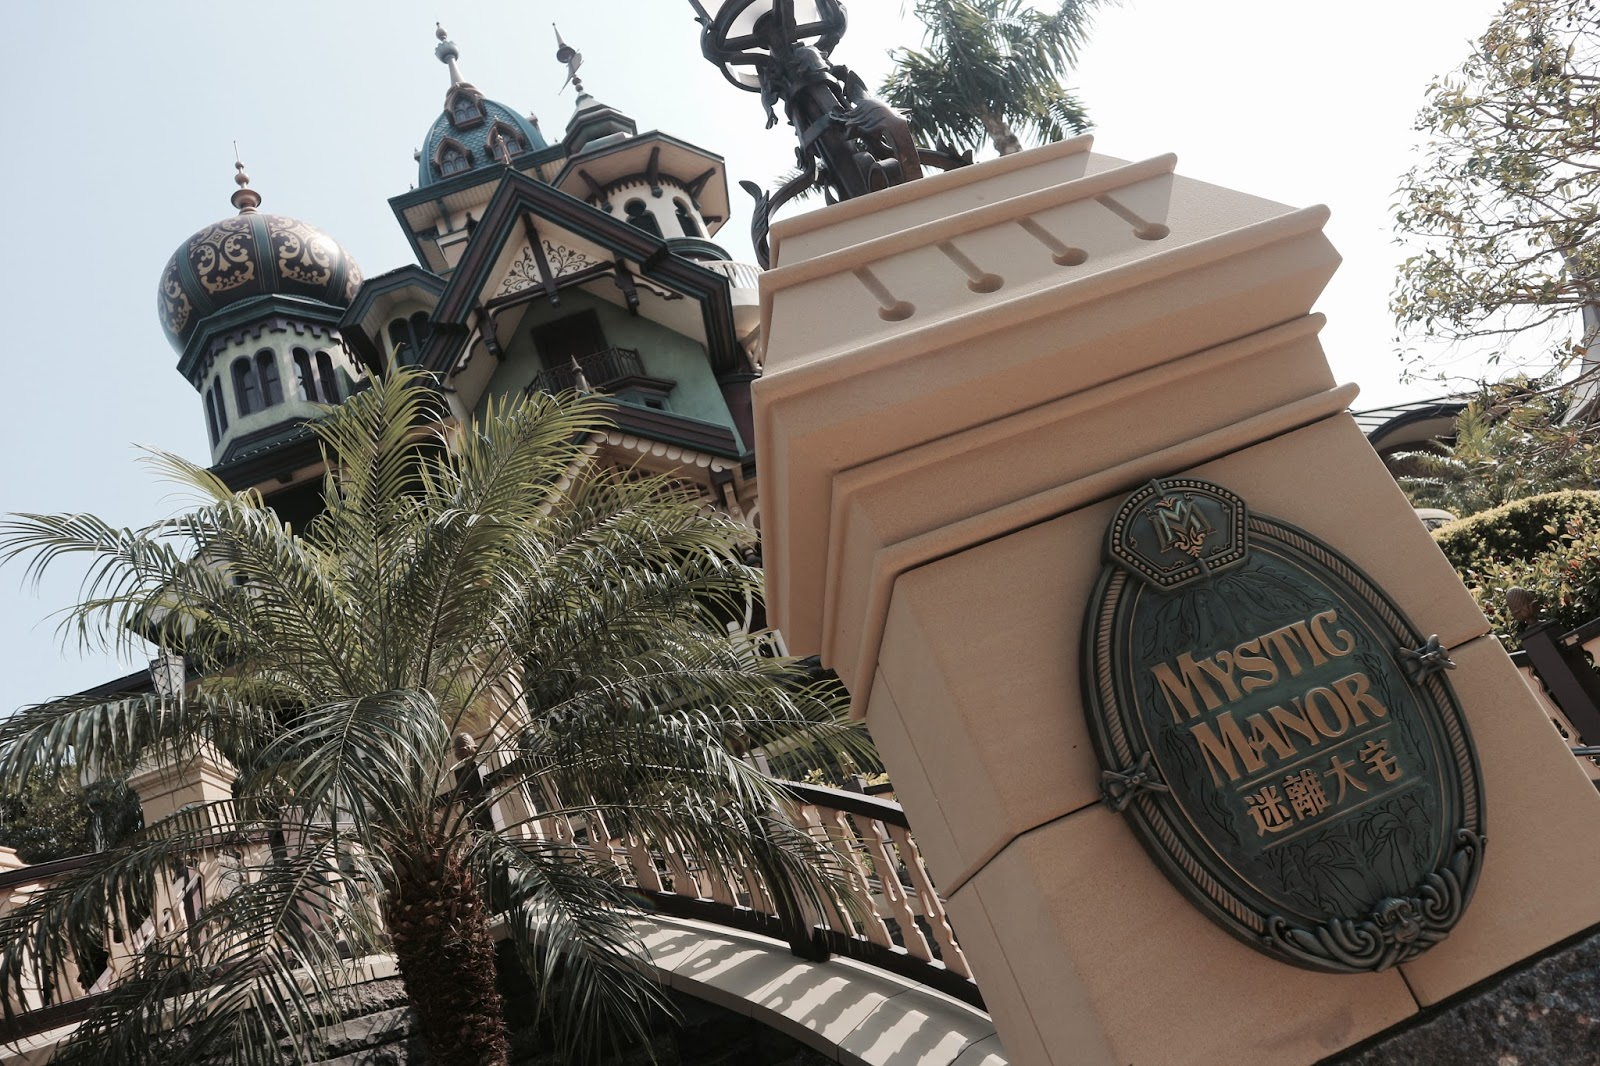 Image Of Mystic Manor Facade Hong Kong Disneyland